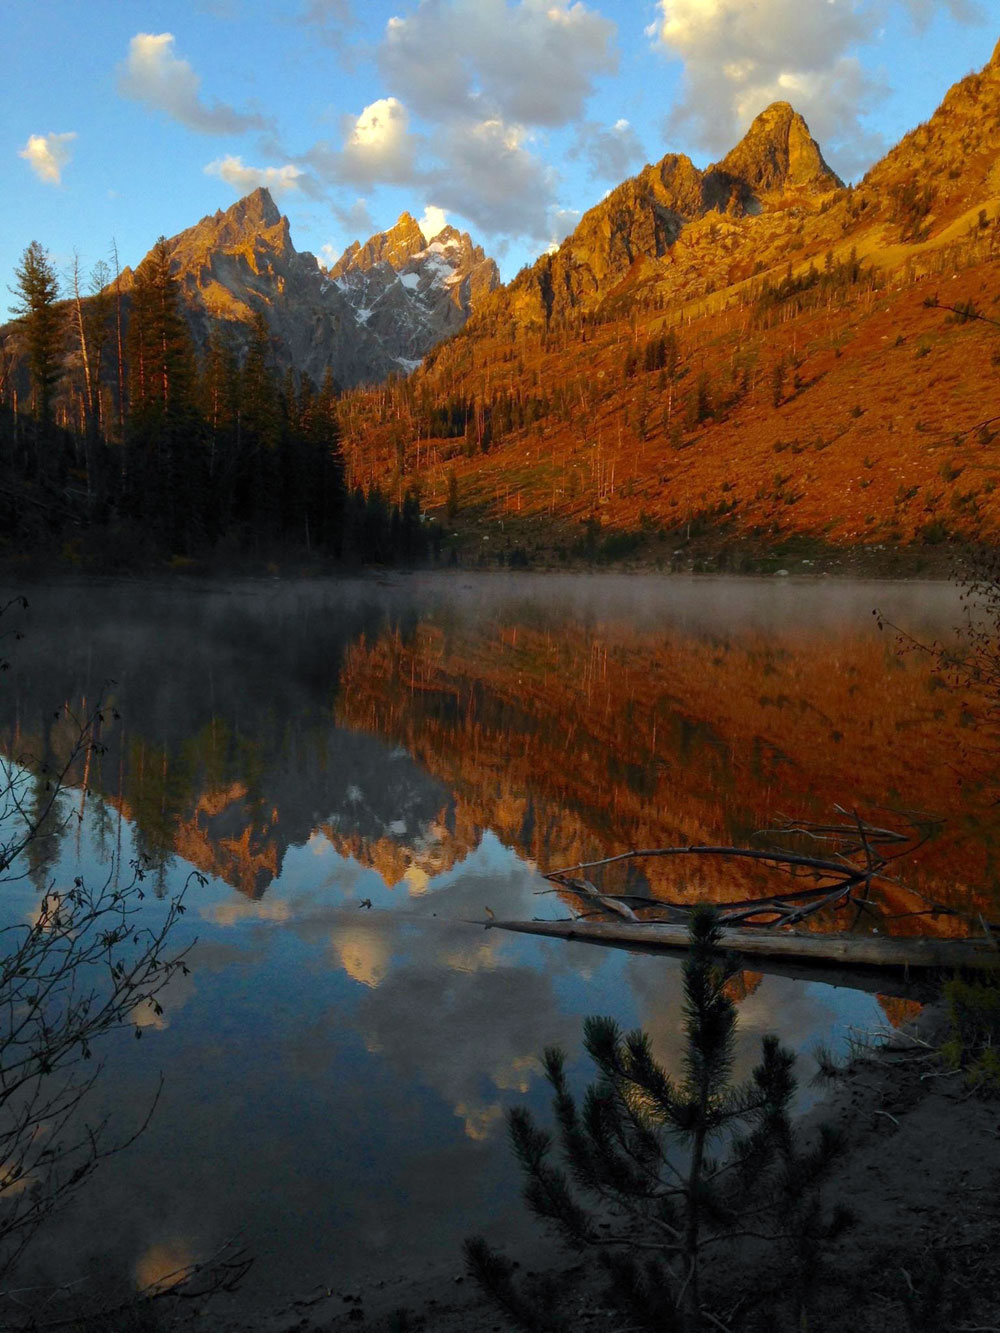 Sunrise on the Grand Tetons along the shores of String Lake, Wyoming. Photograph © 2015 Donald R. Winslow